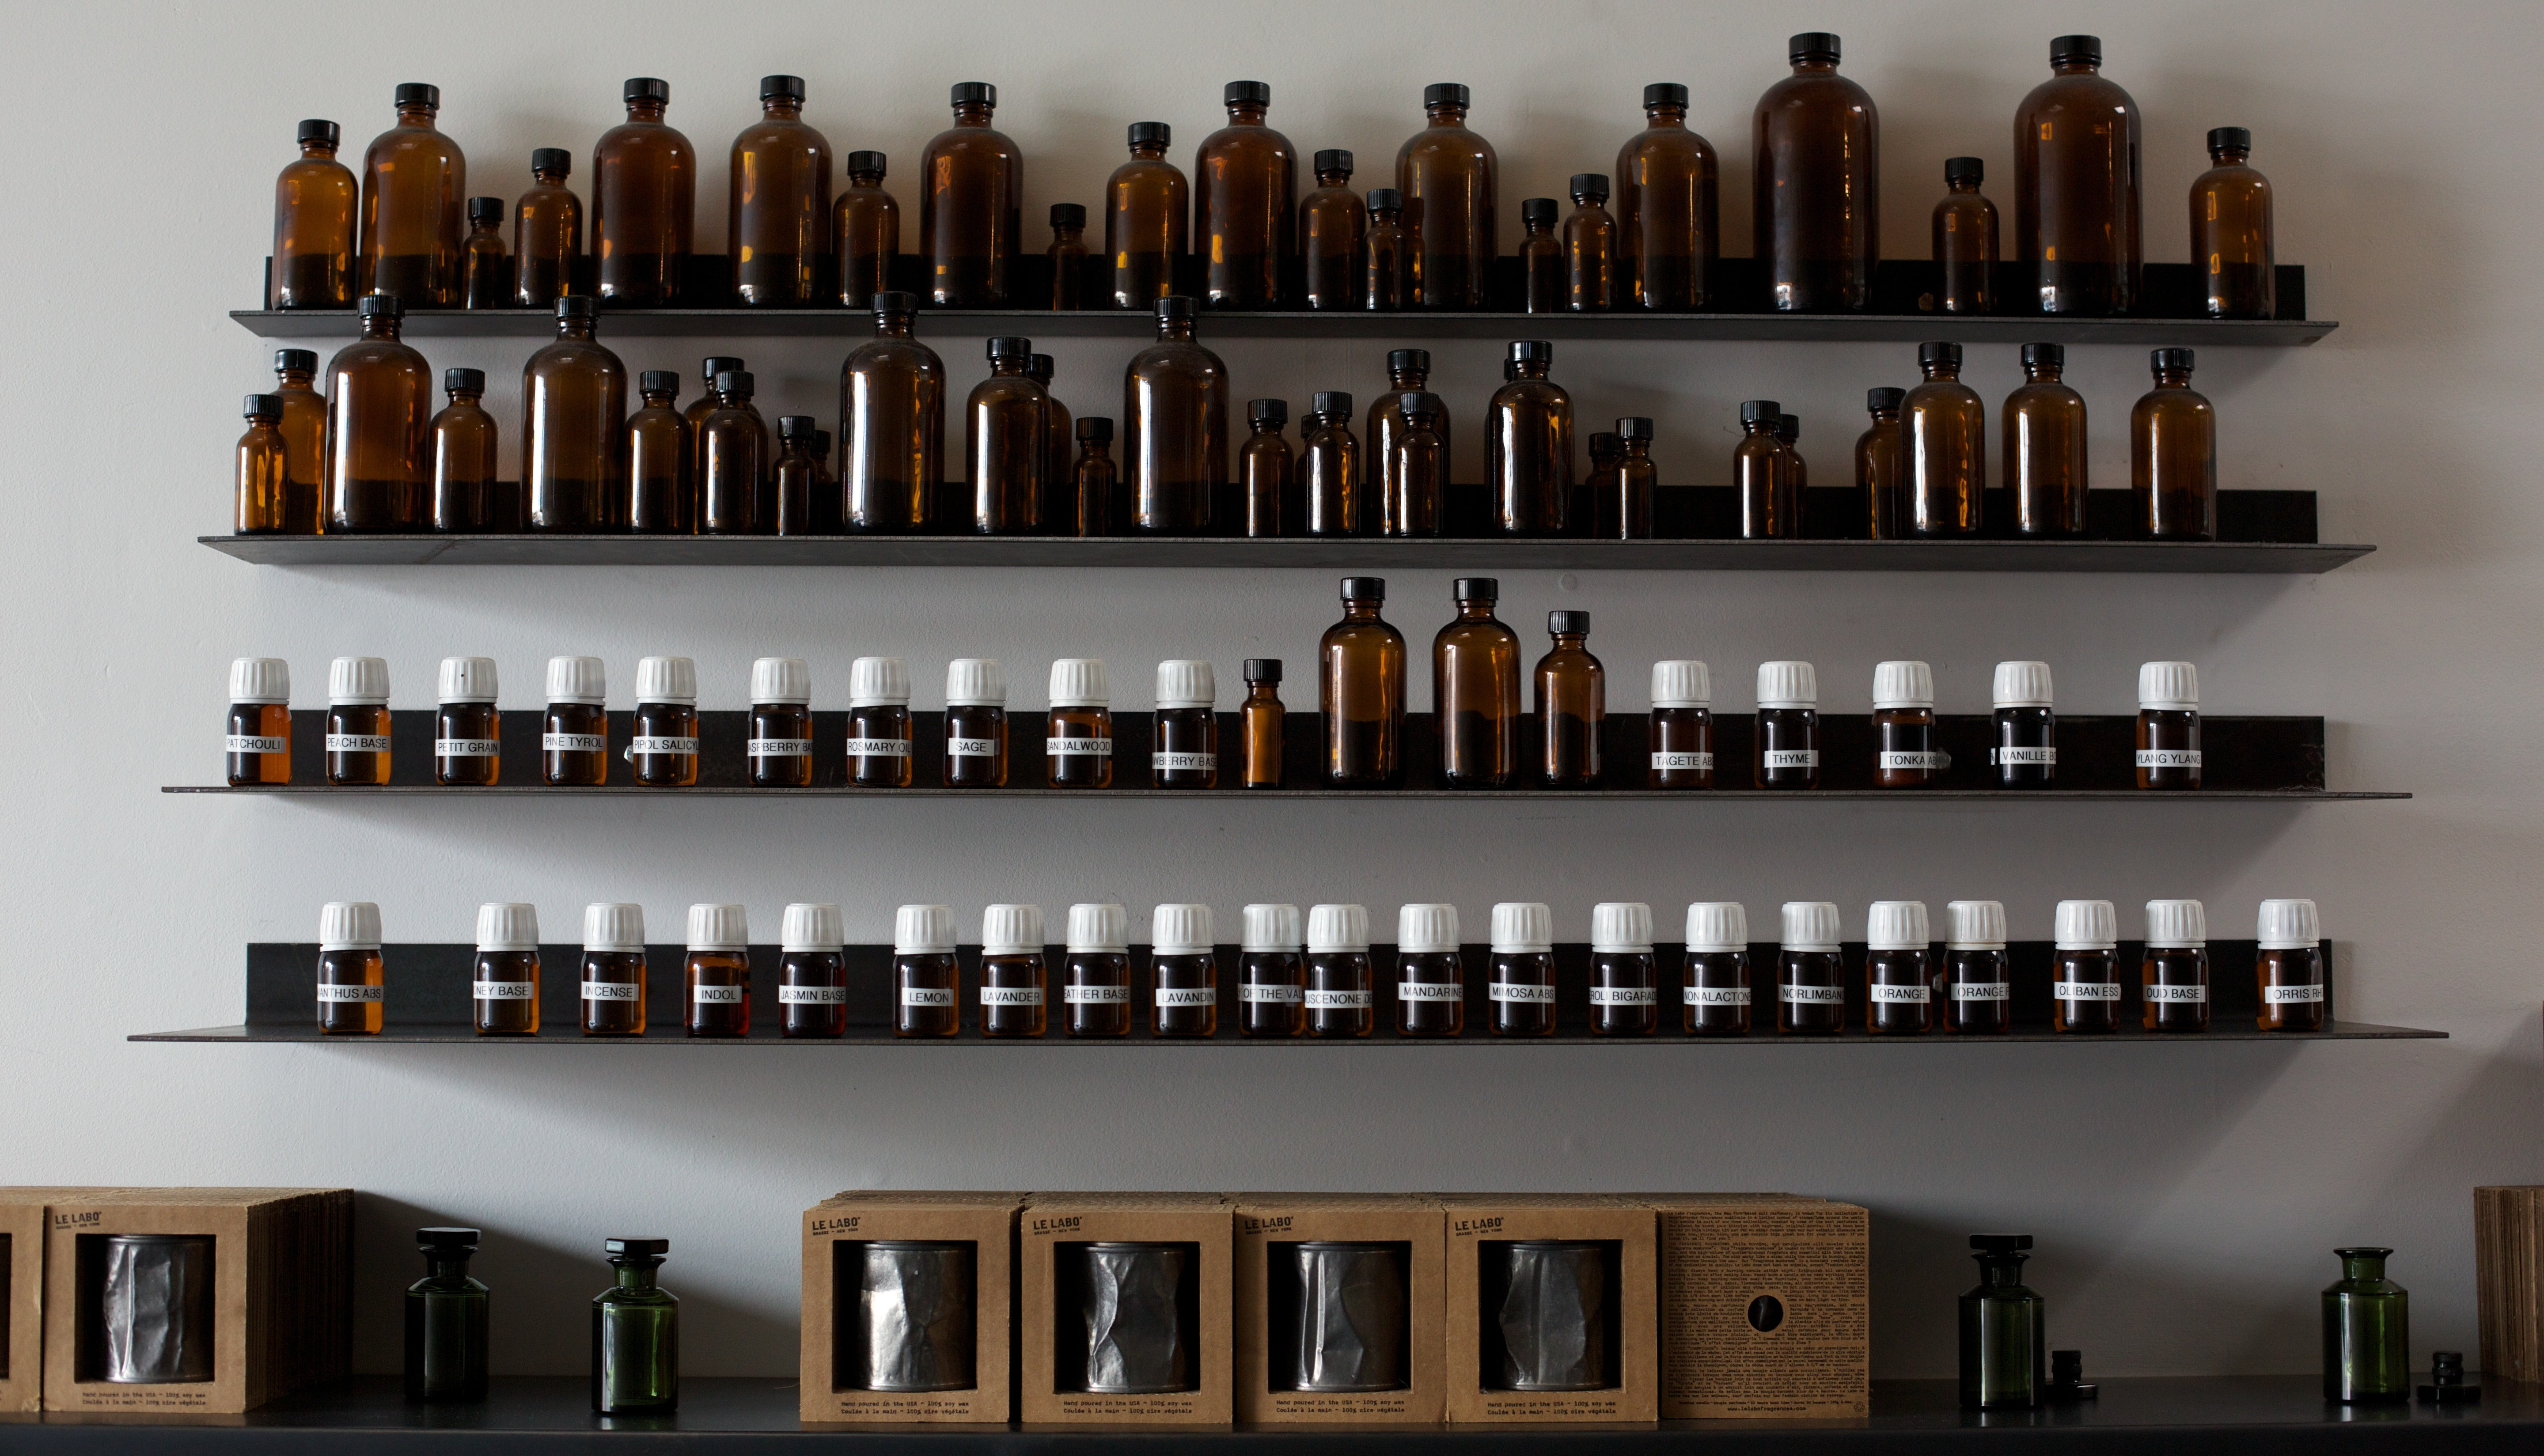 Fragrance ingredients in a Le Labo store | Source: Courtesy